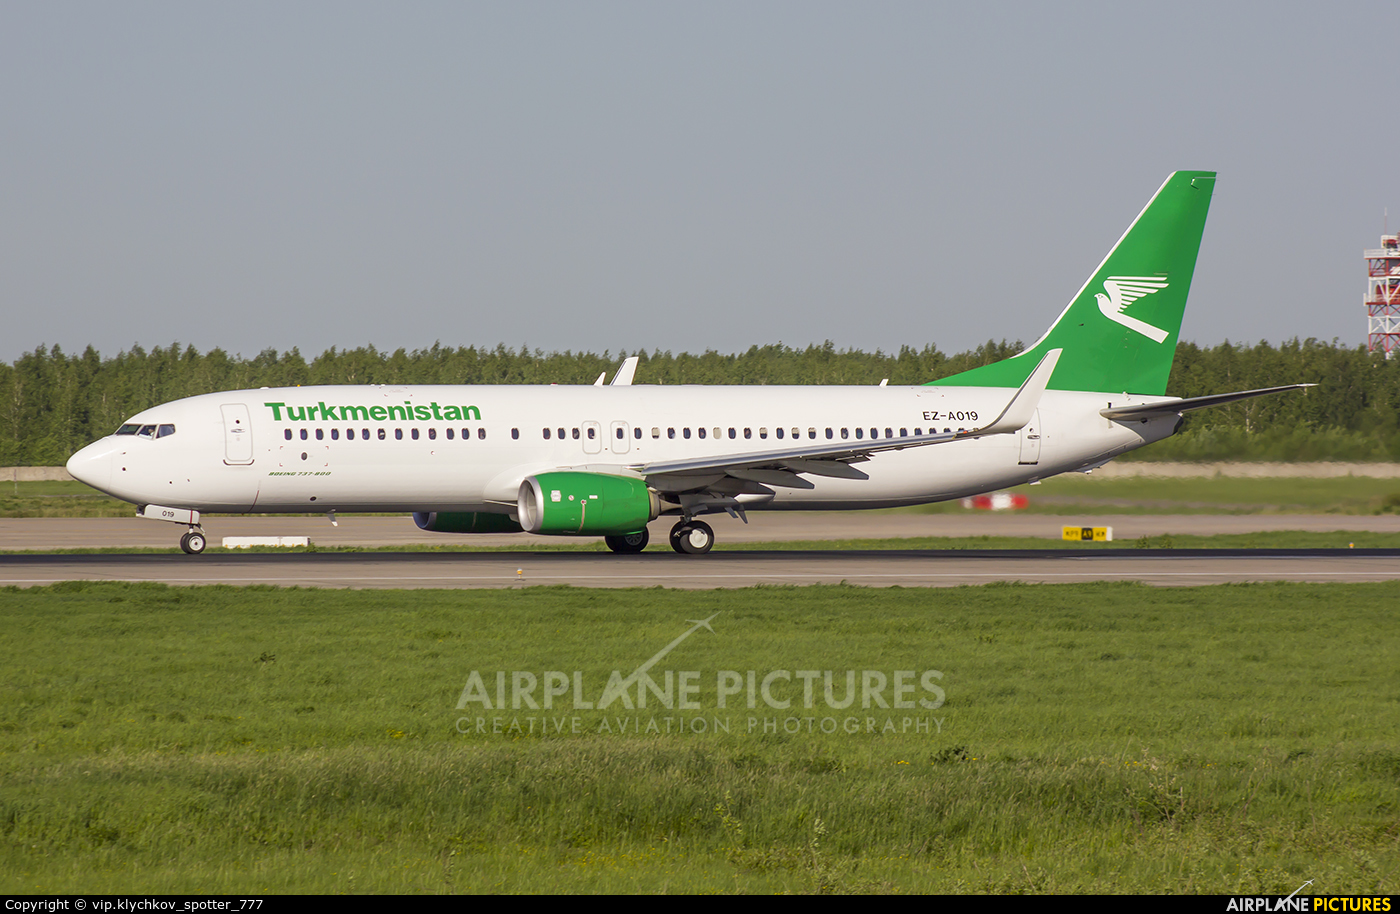 Turkmenistan Airlines EZ-A019 aircraft at Moscow - Domodedovo